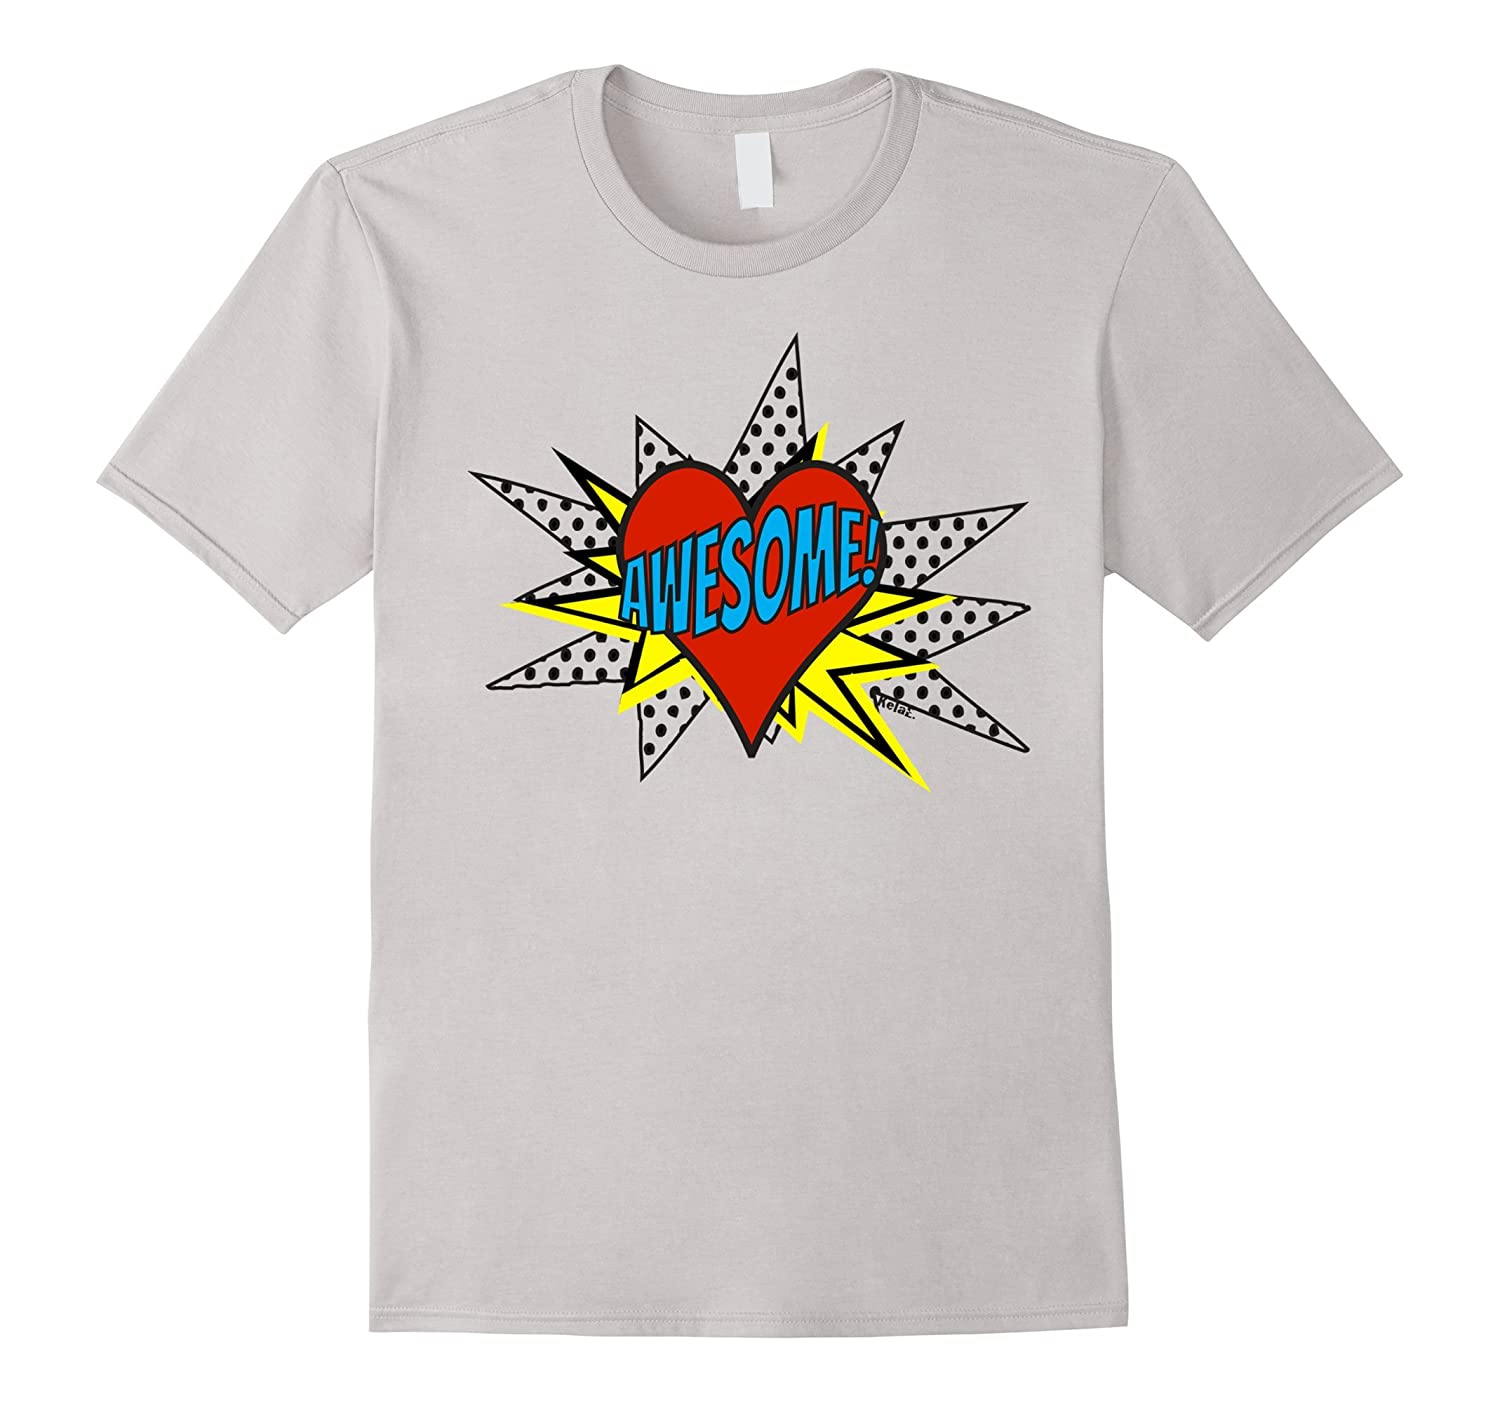 Valentines day shirt for boys awesome superhero shirt Boys superhero t shirts